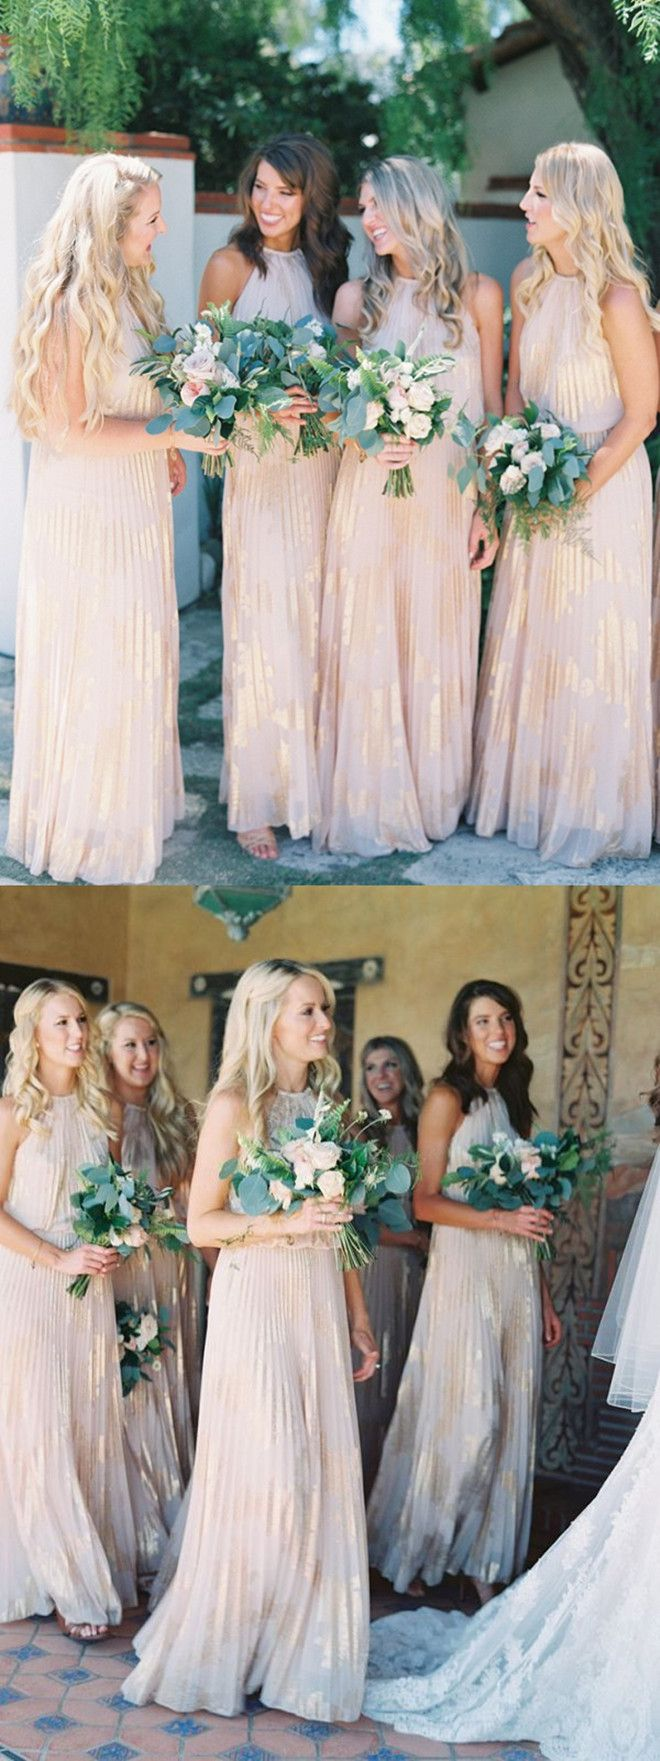 Best 20 champagne bridesmaid dresses ideas on pinterest 2017 bridesmaid dresseslong bridesmaid dresseselegant bridesmaid dresseschampagne bridesmaid dresses ombrellifo Image collections